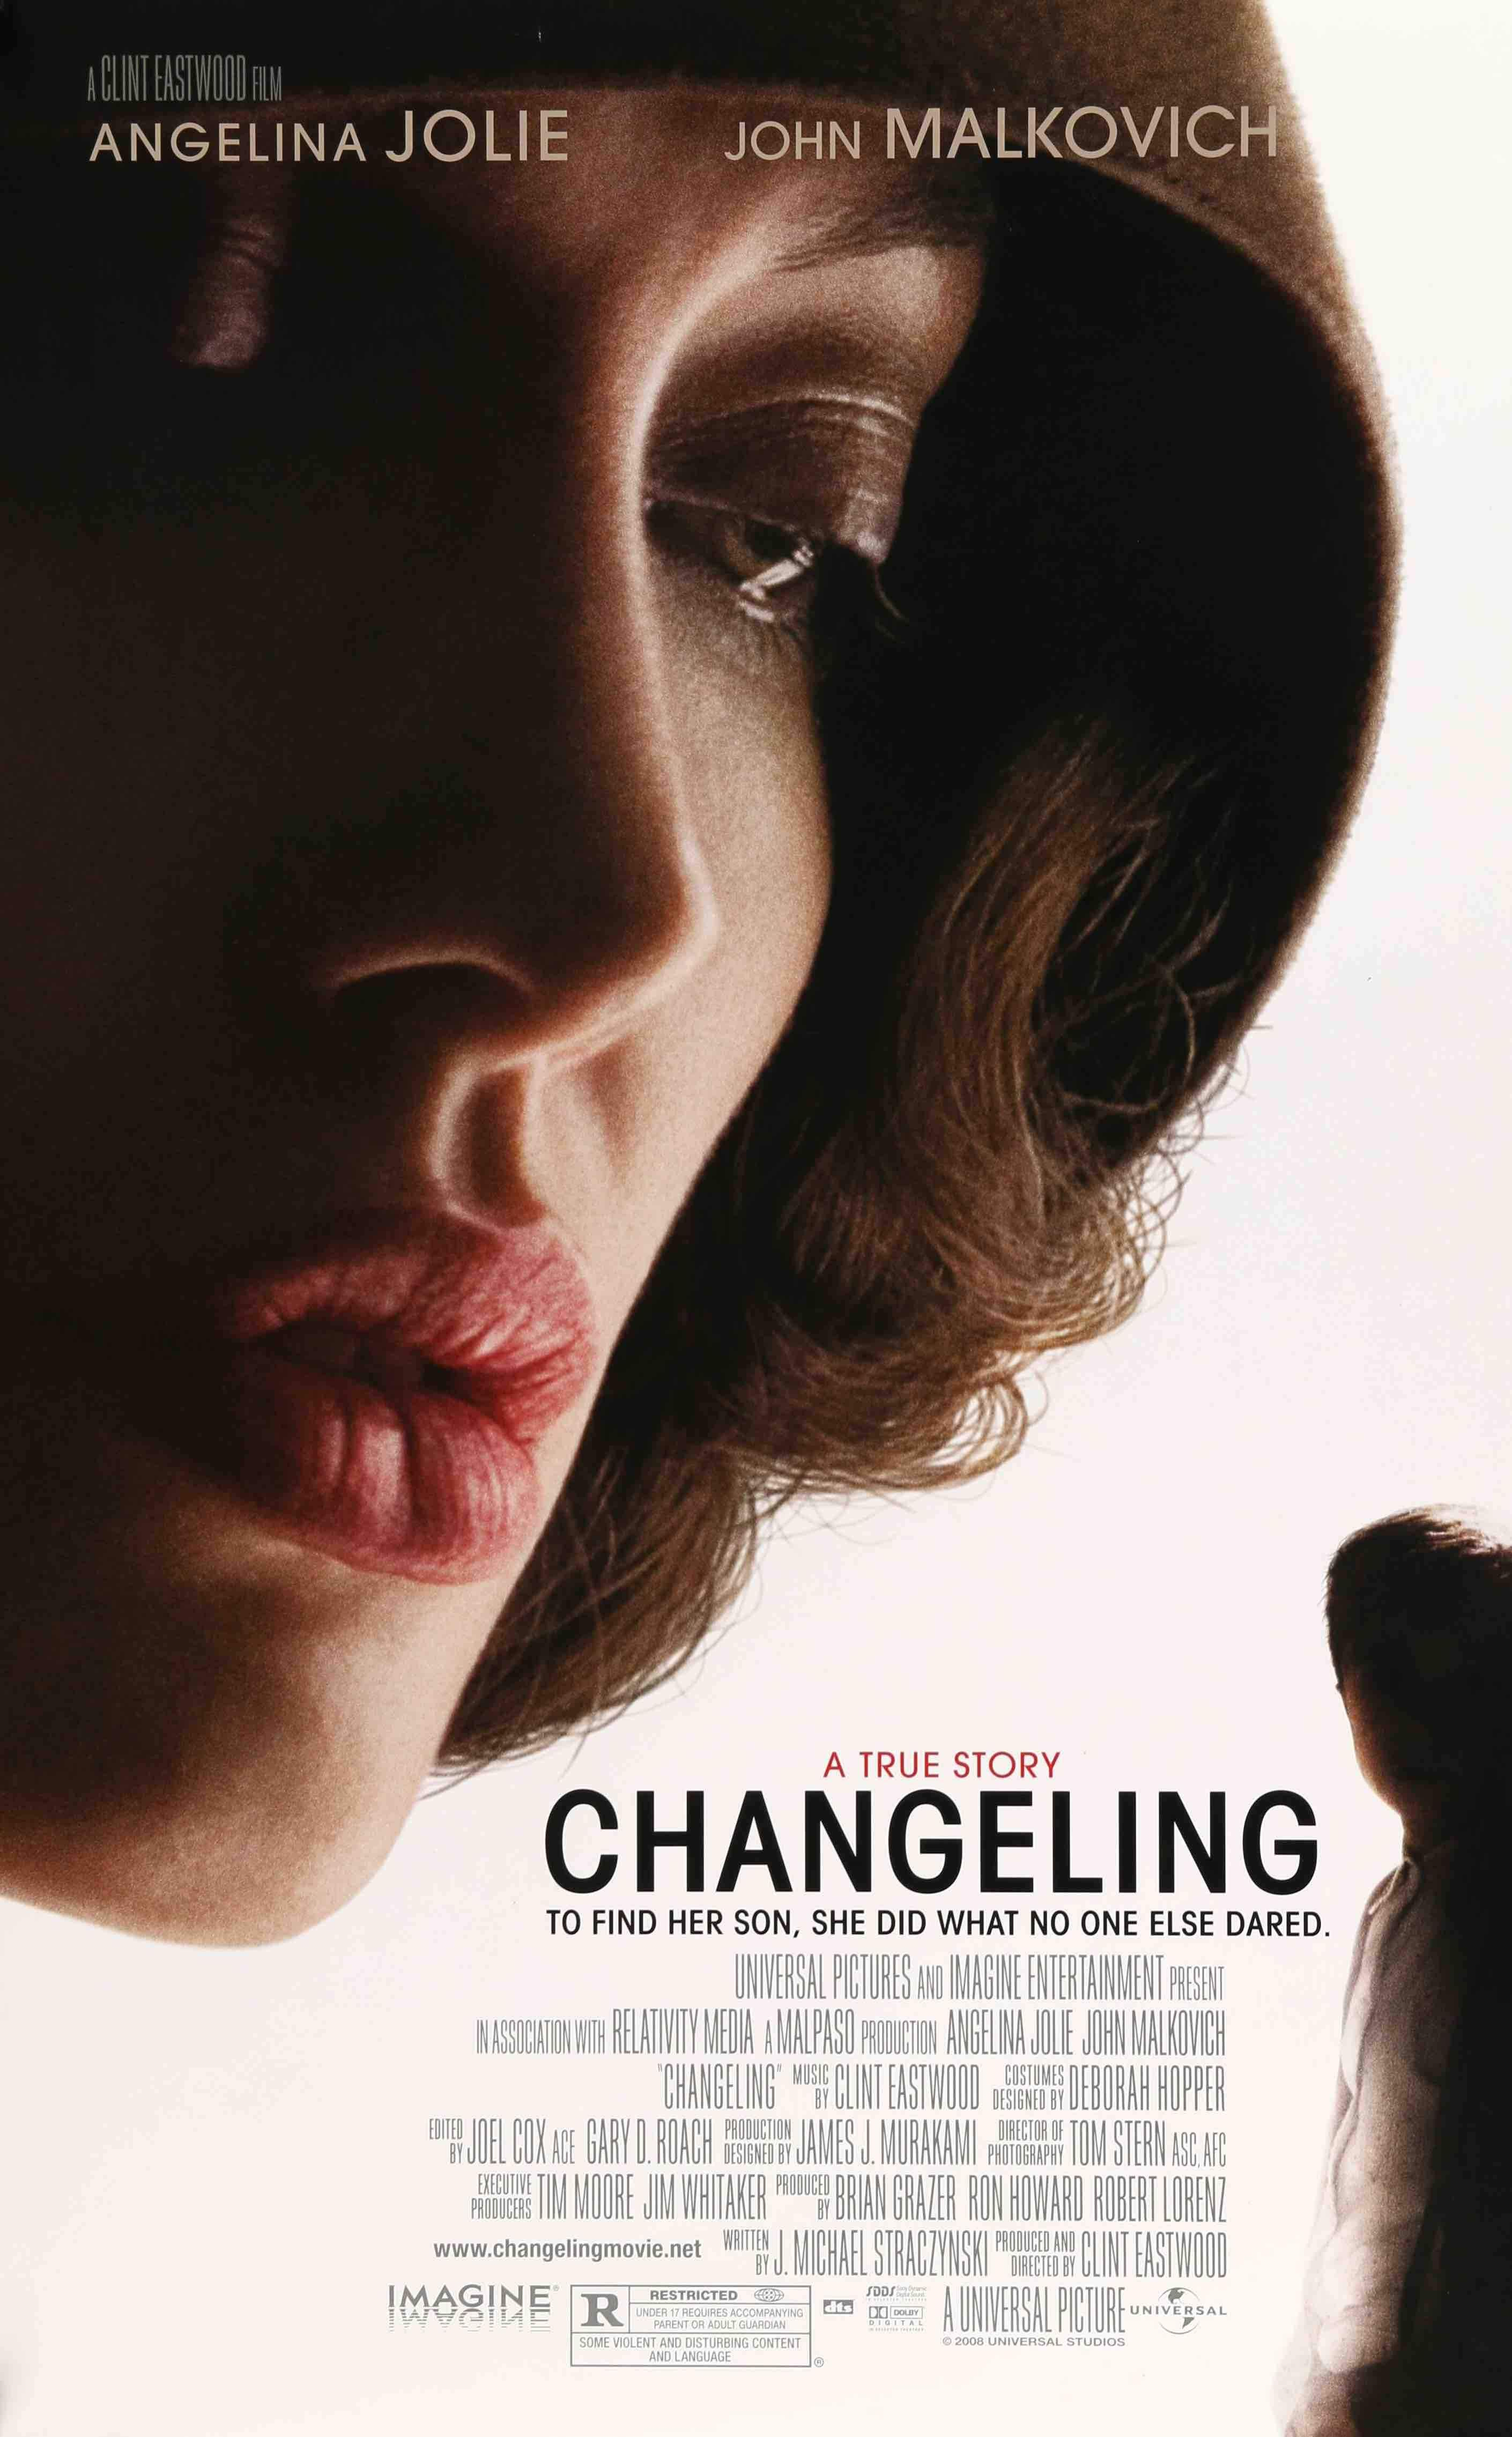 Pin By Audrey On Movies In 2021 Changeling Film Movie Posters Changeling